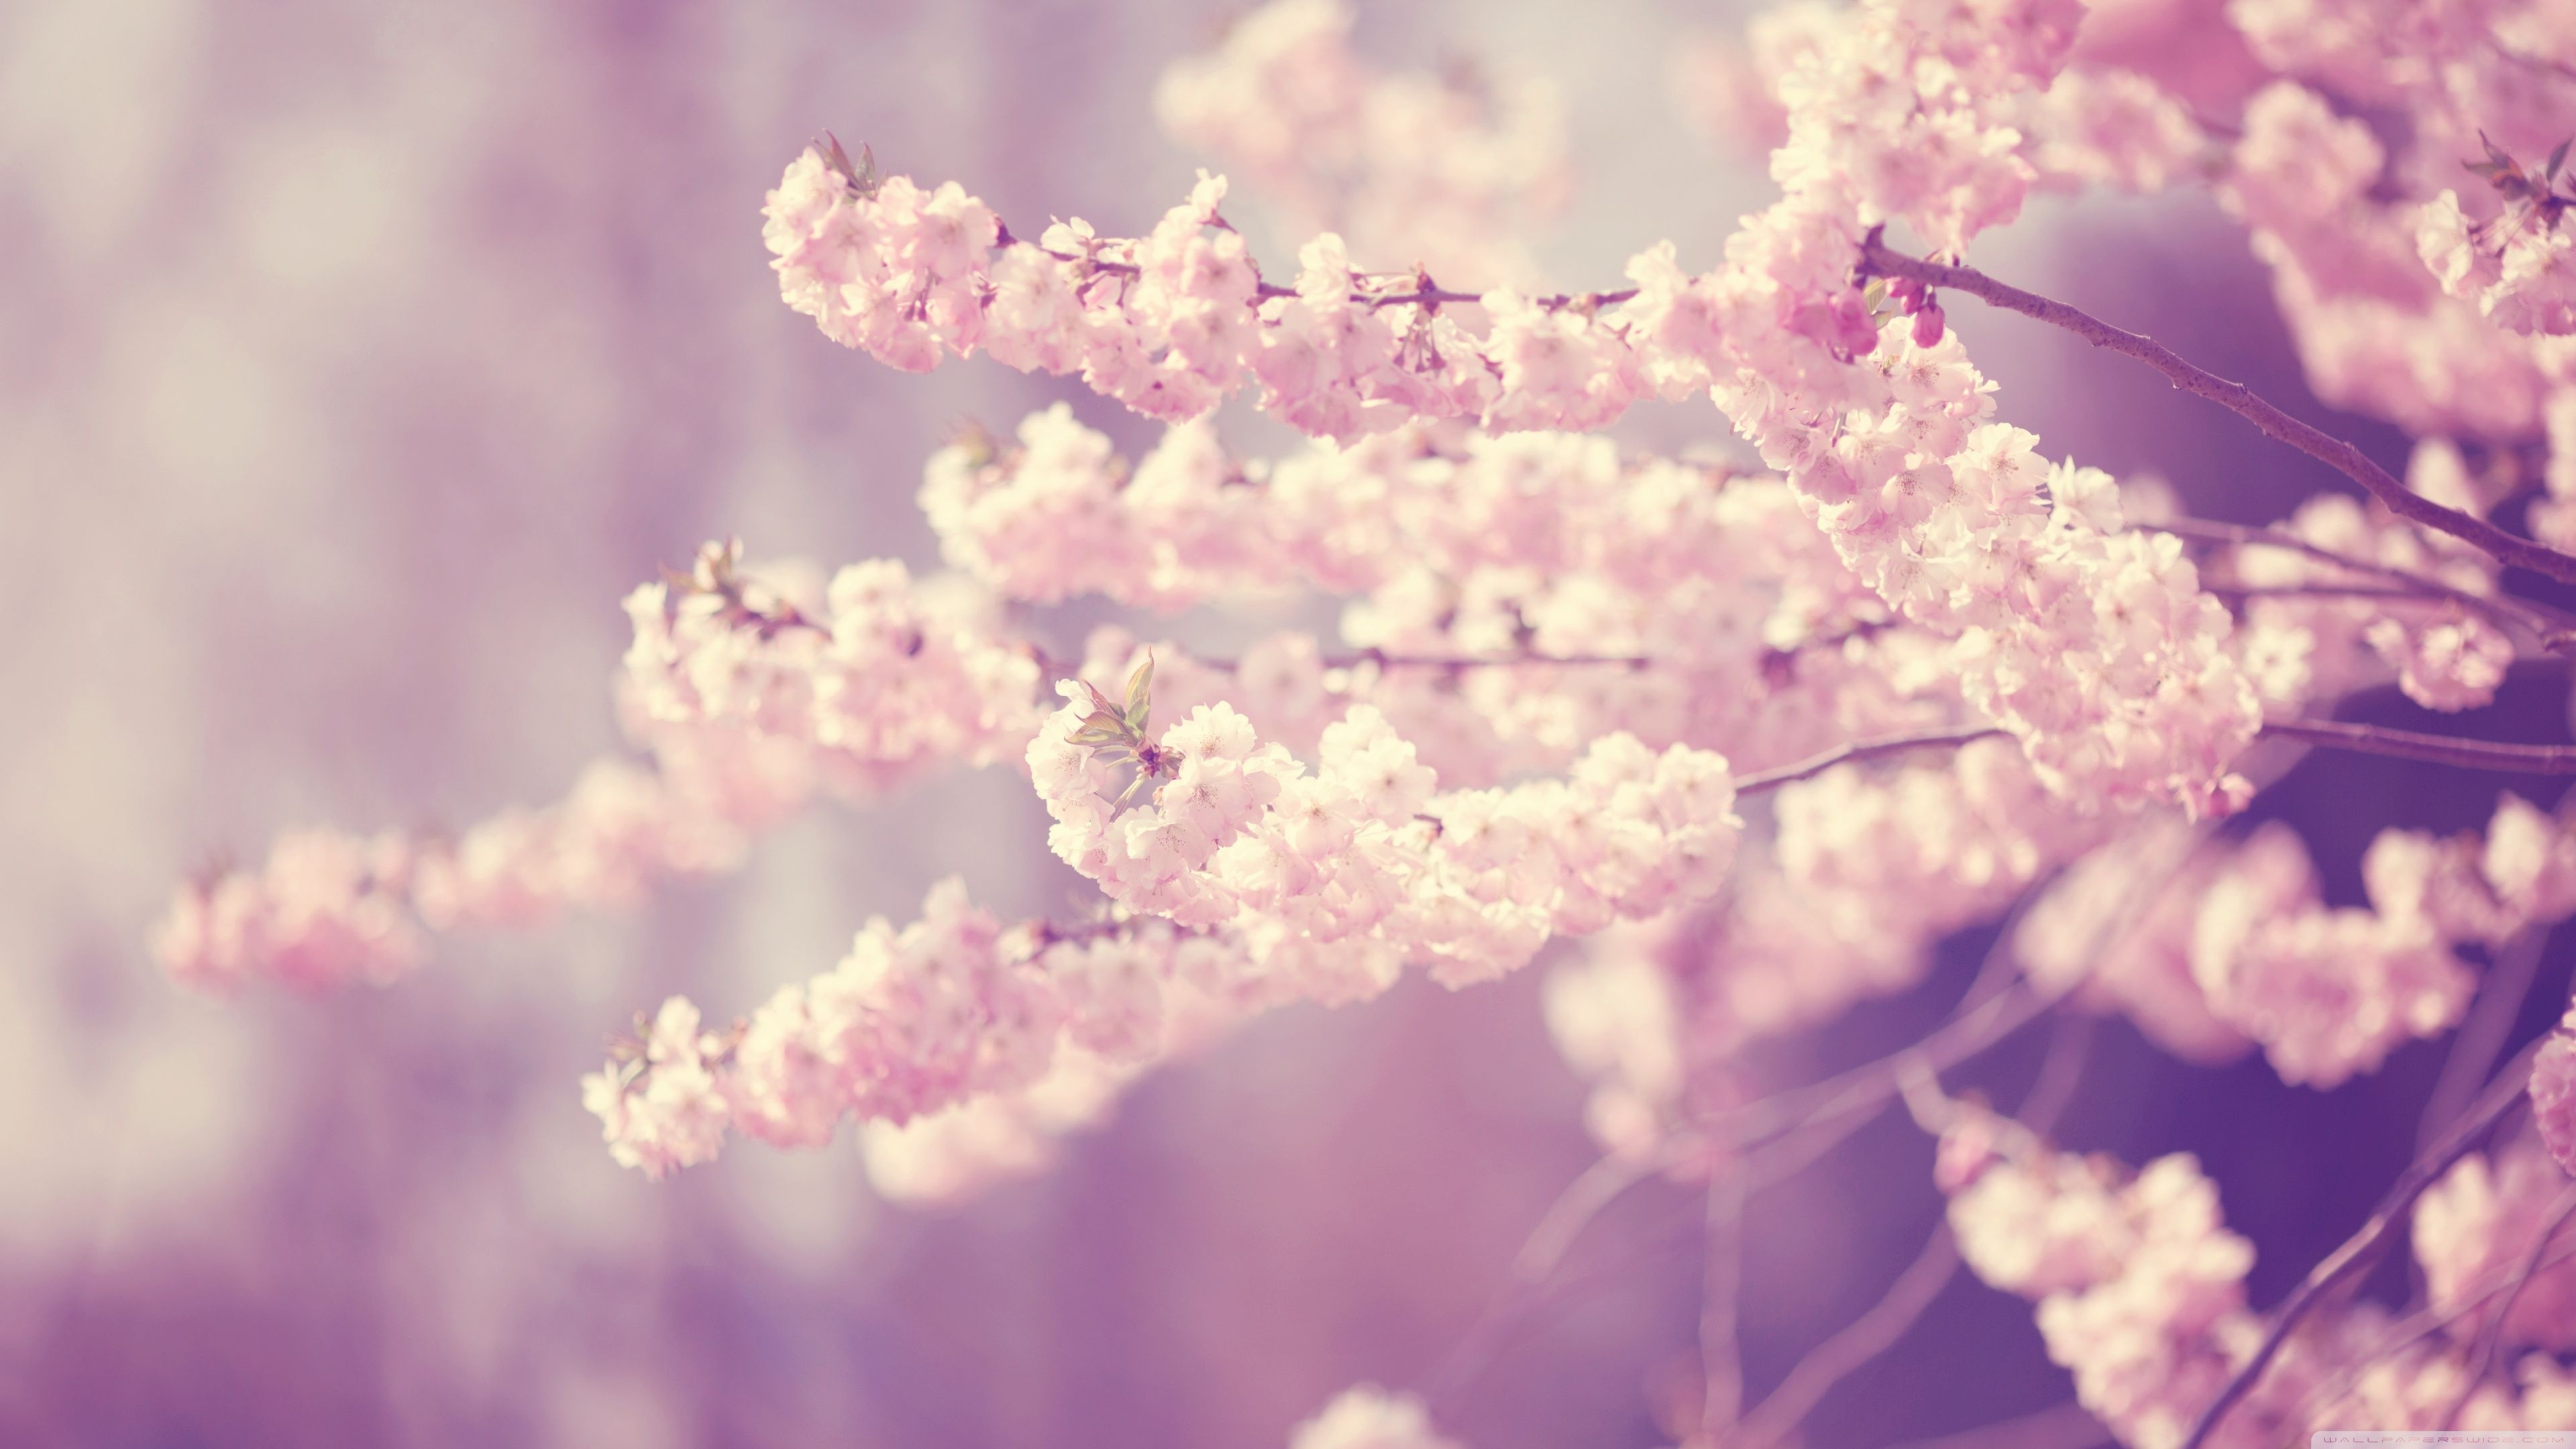 Pink Cherry Blossom Wallpapers Top Free Pink Cherry Blossom